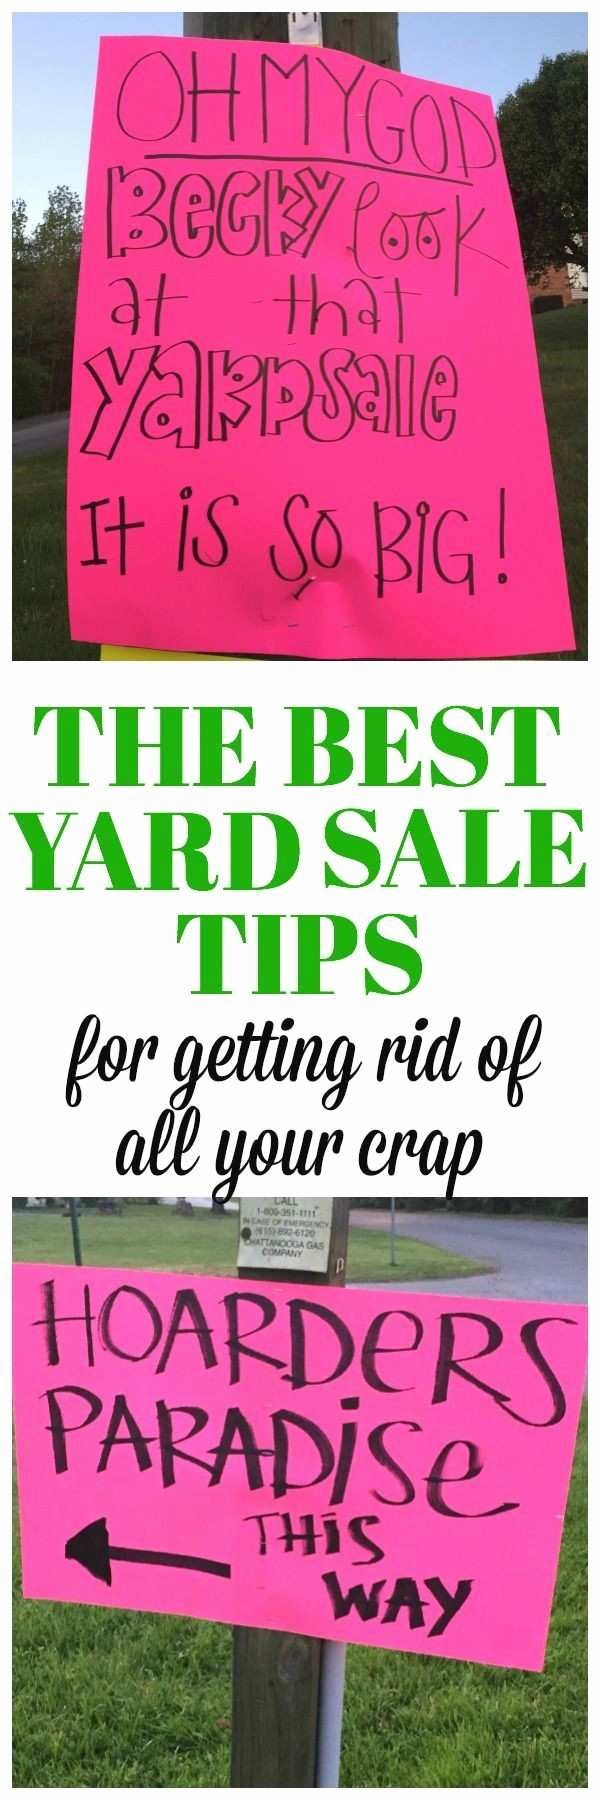 Yard Sale Sign Template Awesome Inspirational Templates for Yard Sale Signs